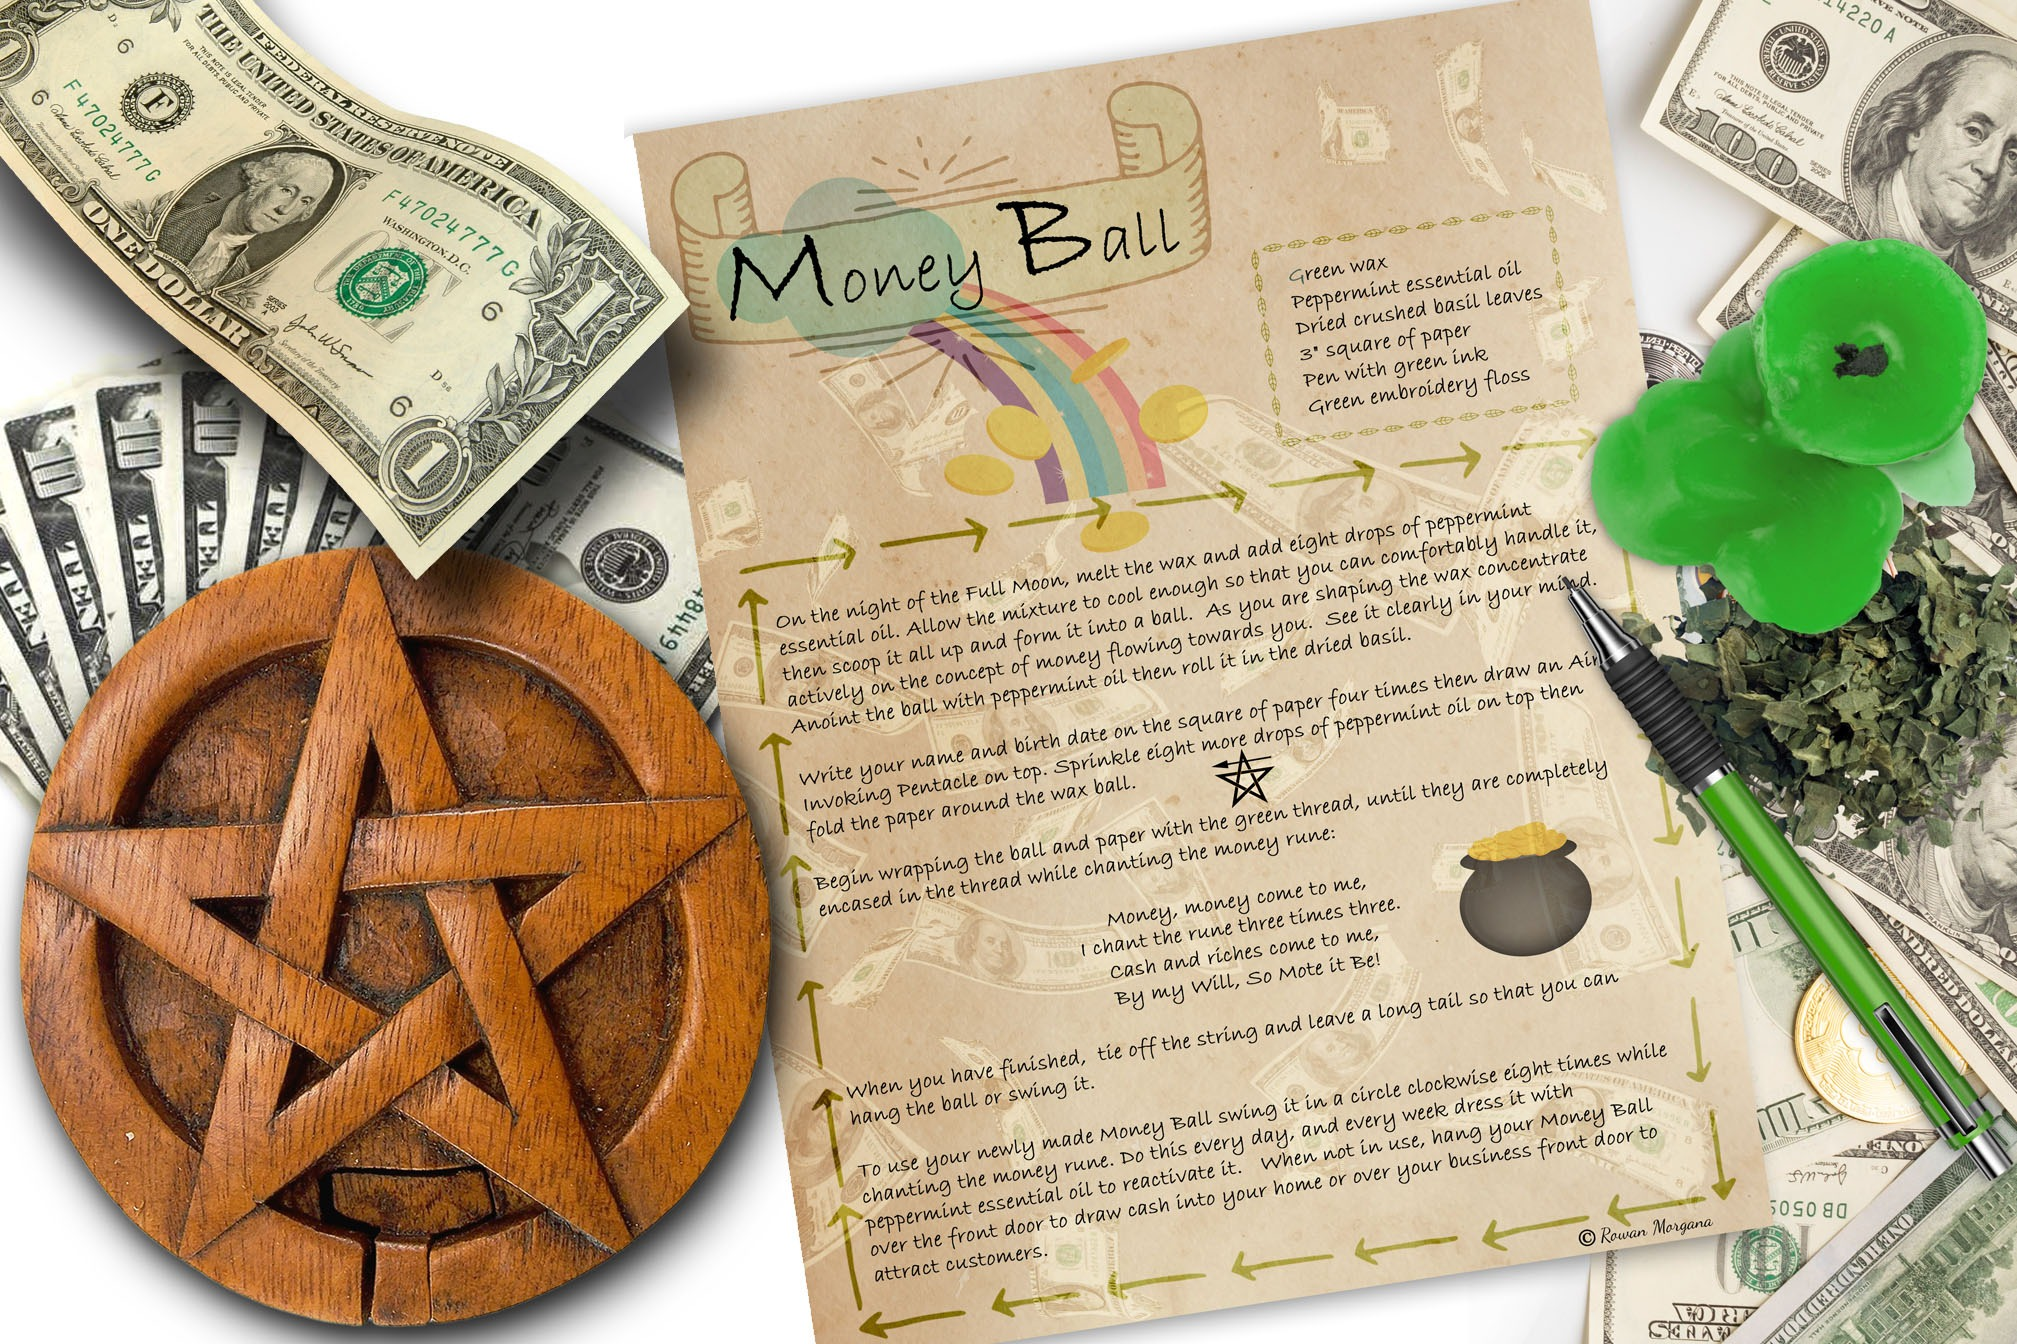 MONEY BALL a spell of riches